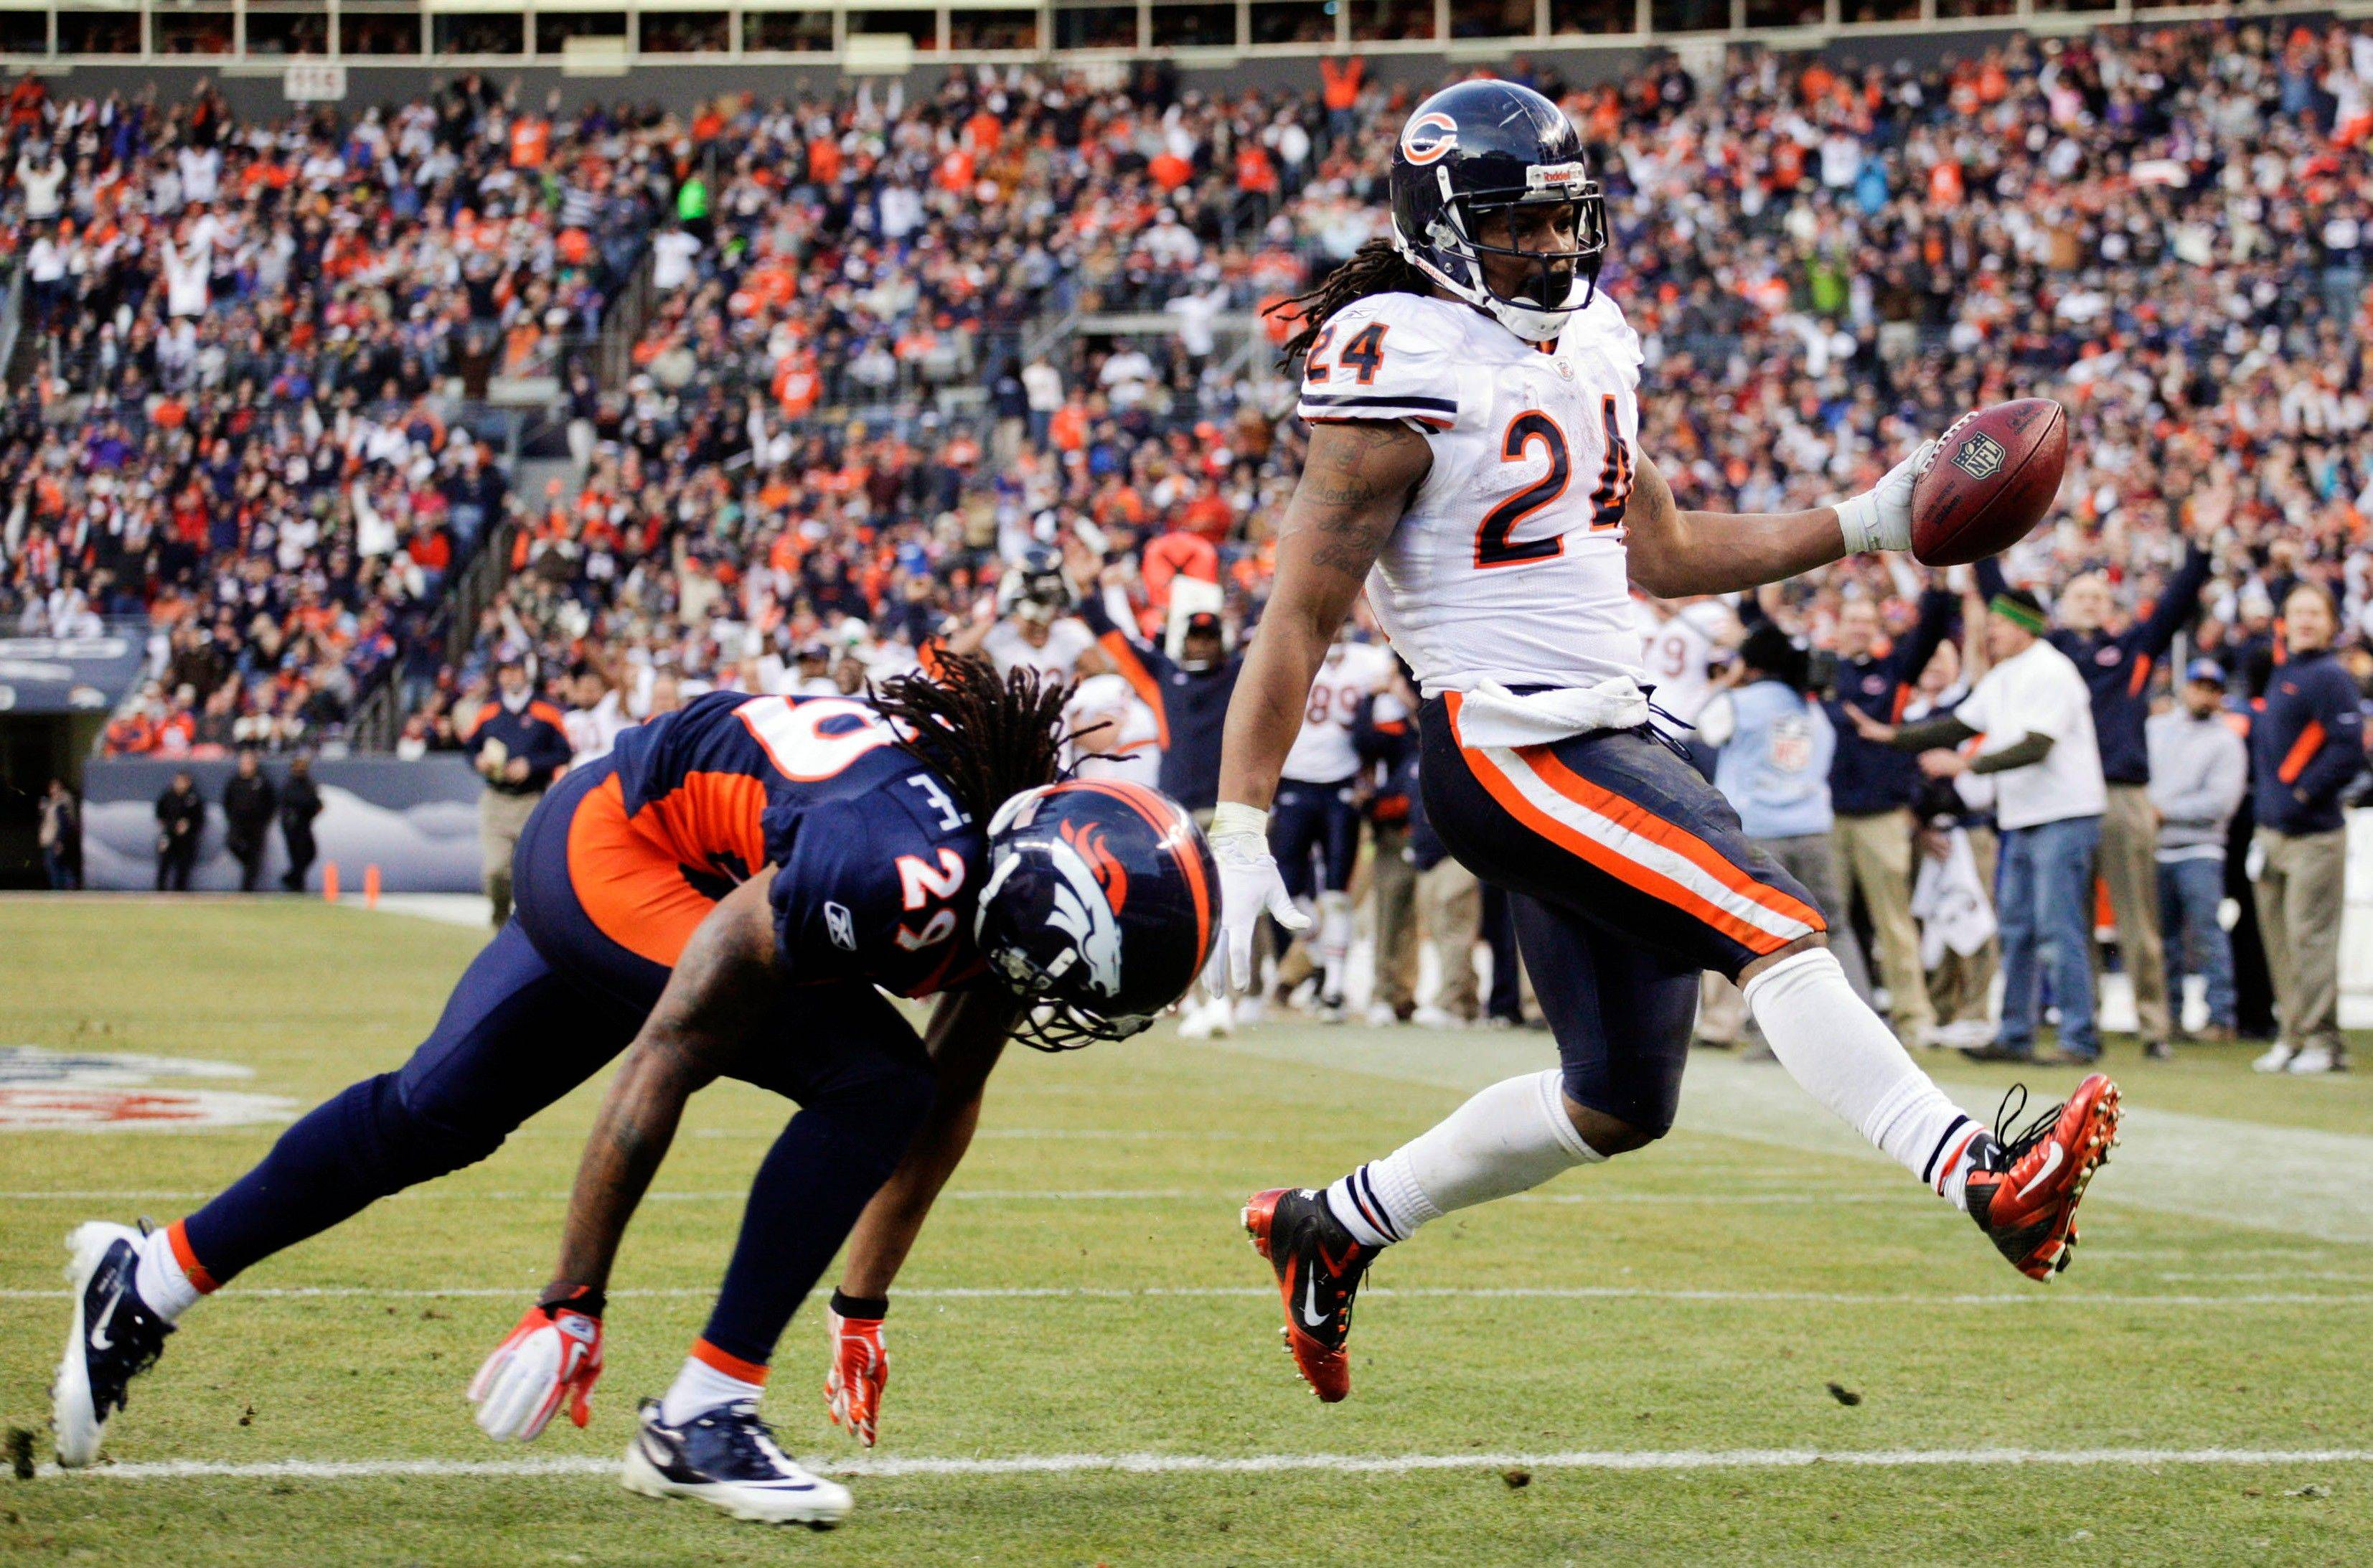 Chicago Bears running back Marion Barber (24) crosses the goal line for a touchdown in front of Denver Broncos defensive back Jonathan Wilhite (29) in the third quarter.